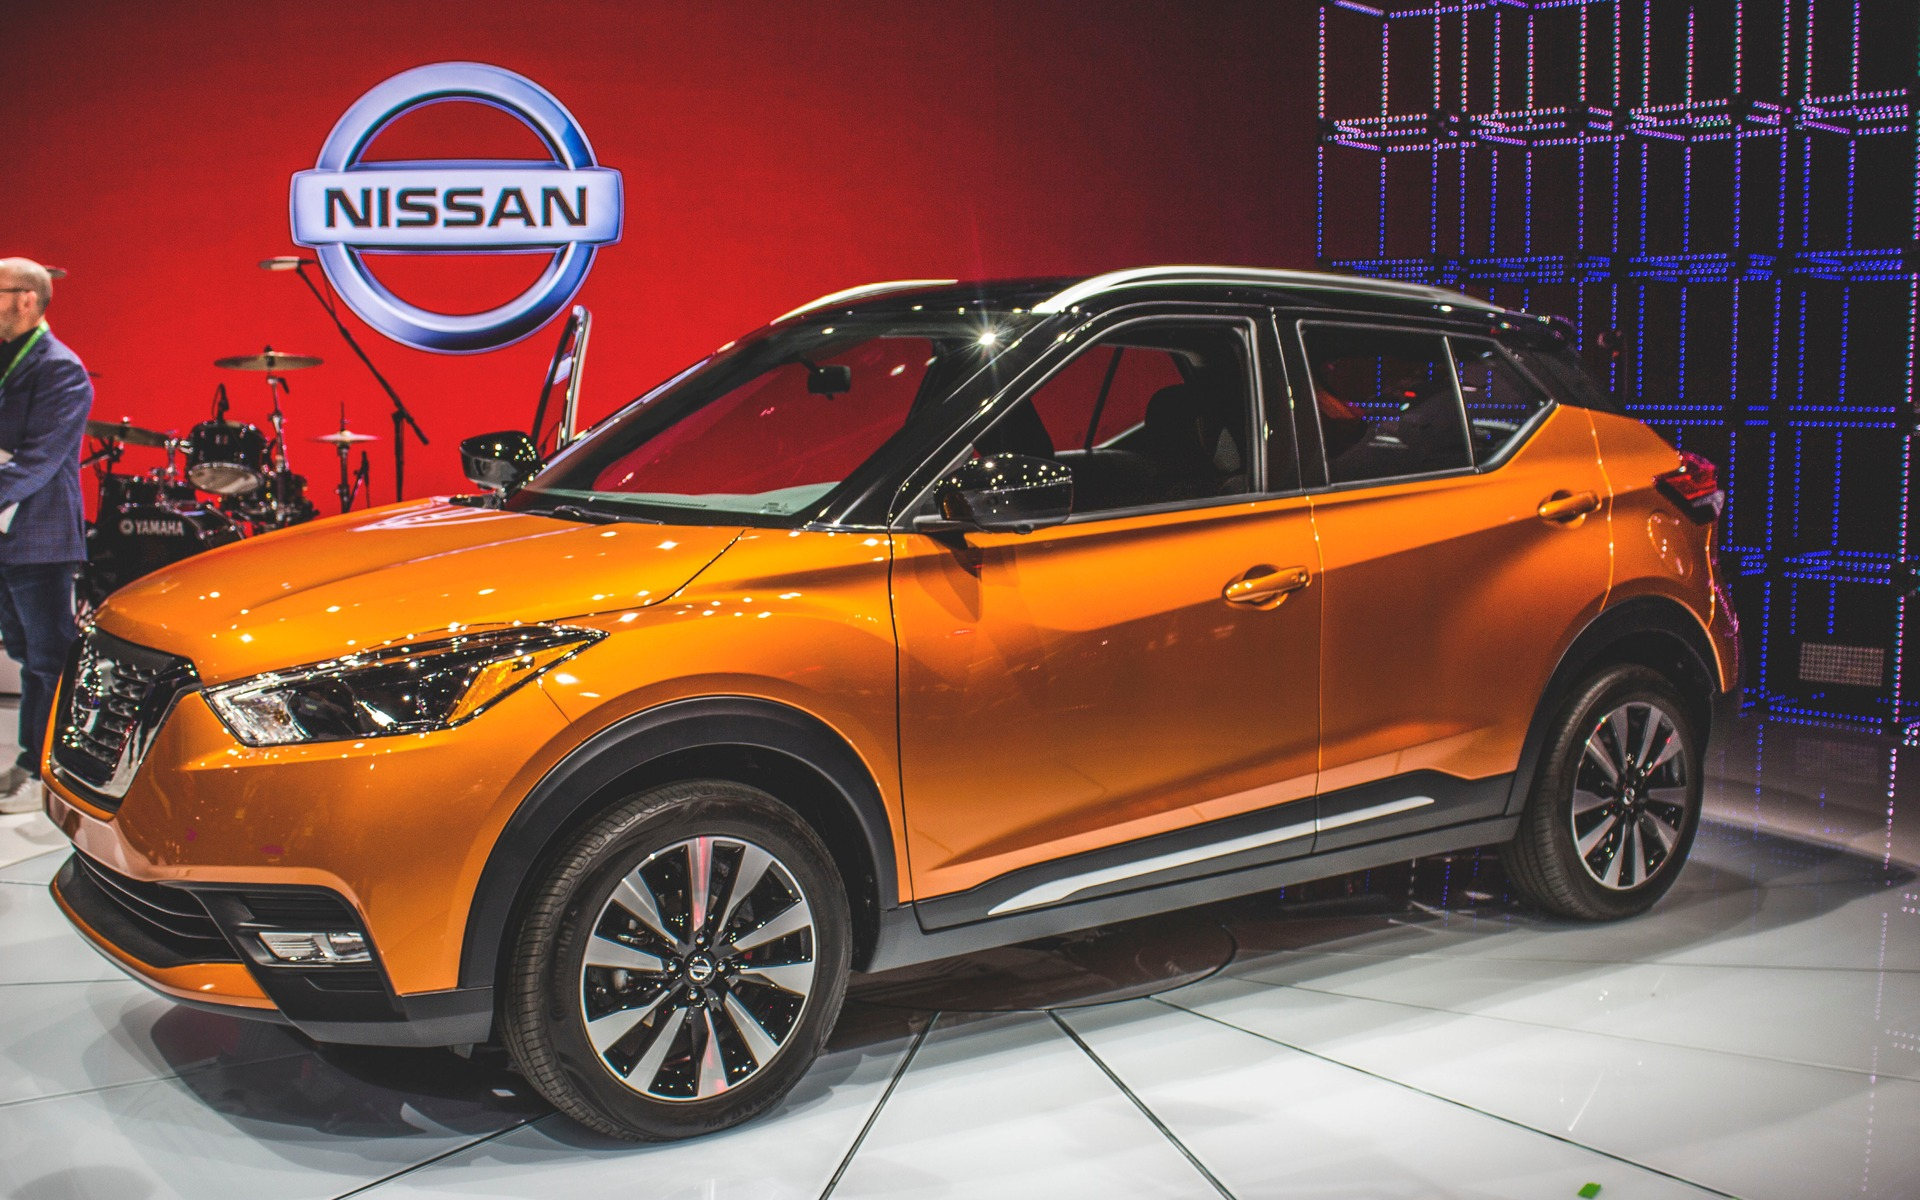 2018 Nissan Kicks The New Juke The Car Guide